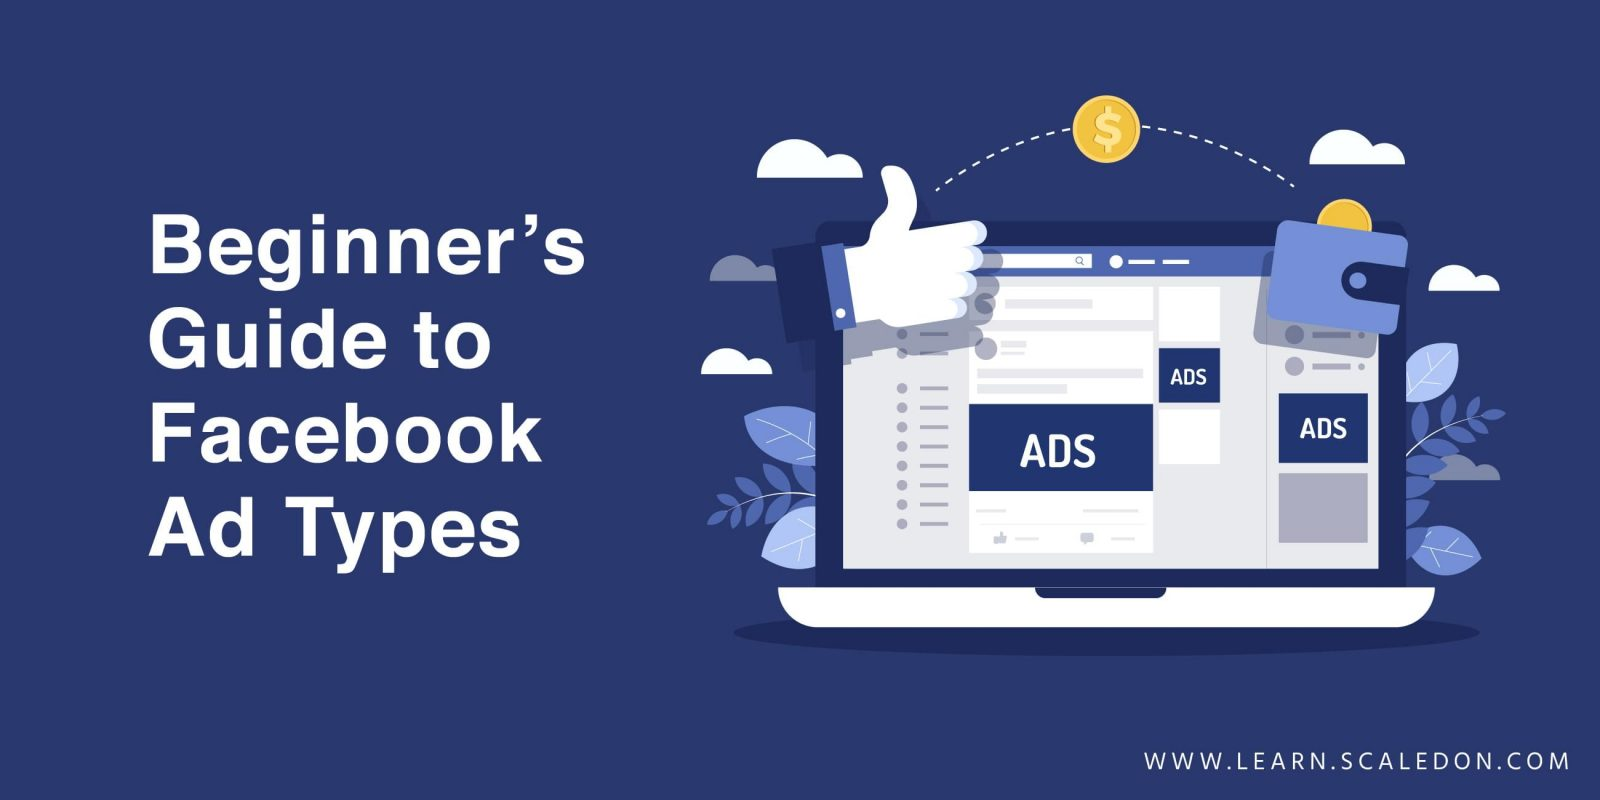 Beginners Guide to Facebook Ad Types